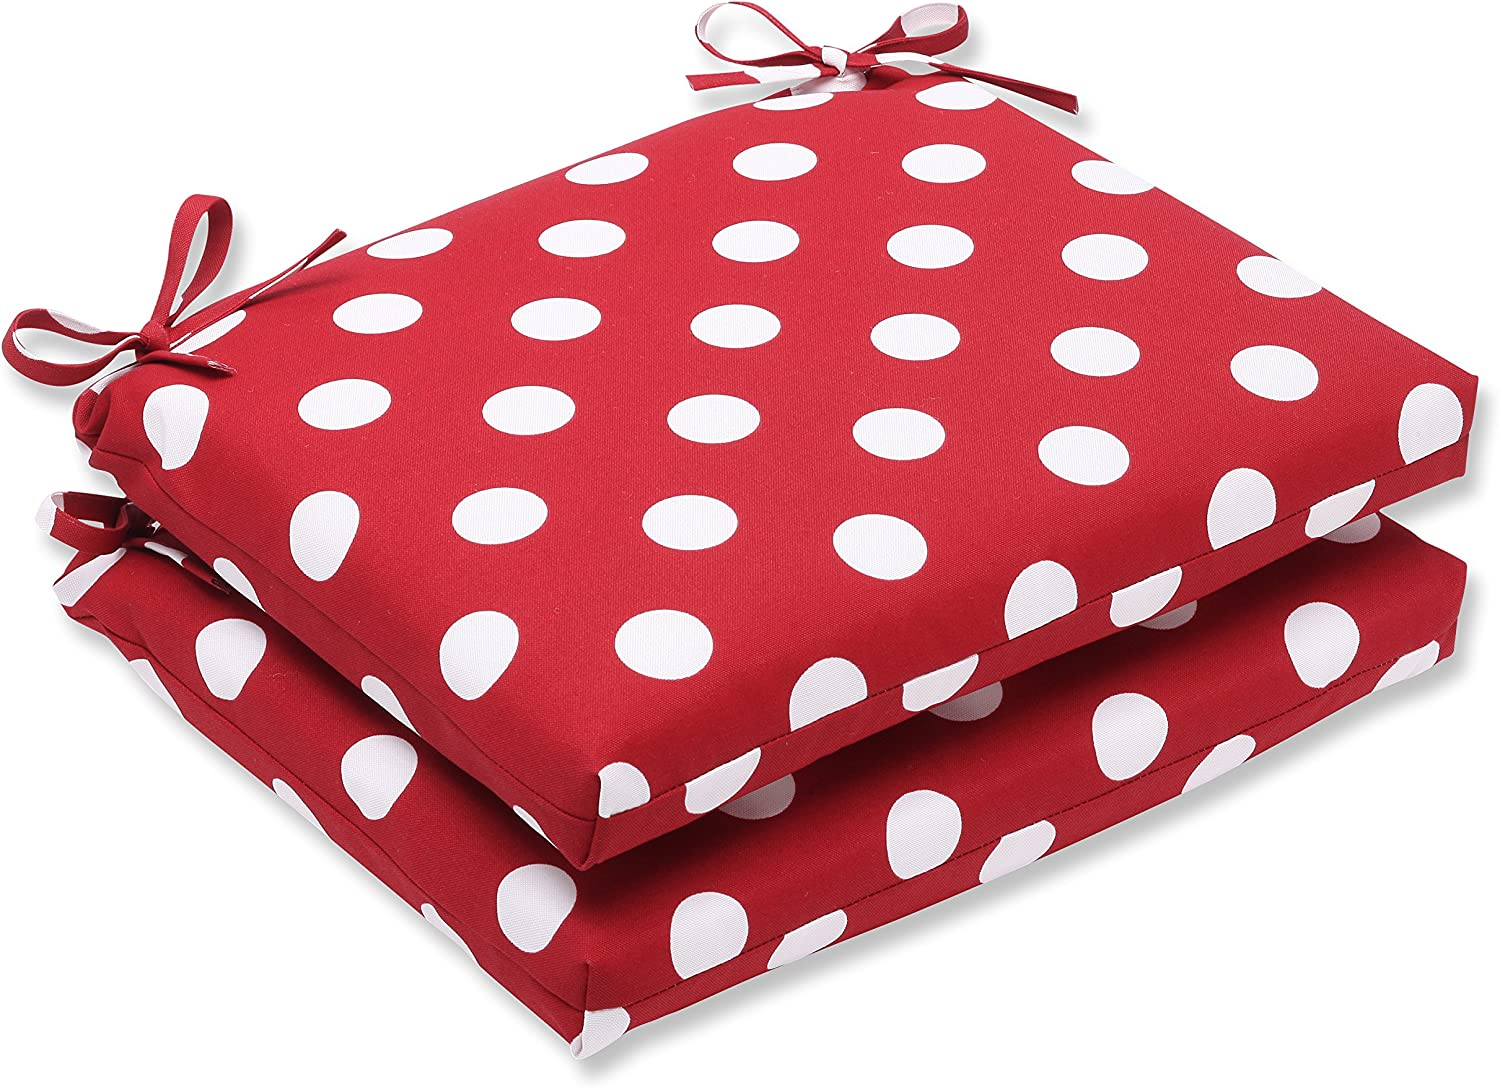 Pillow Perfect Indoor Outdoor Red White Polka Dot Seat Cushion, Squared, 2-Pack